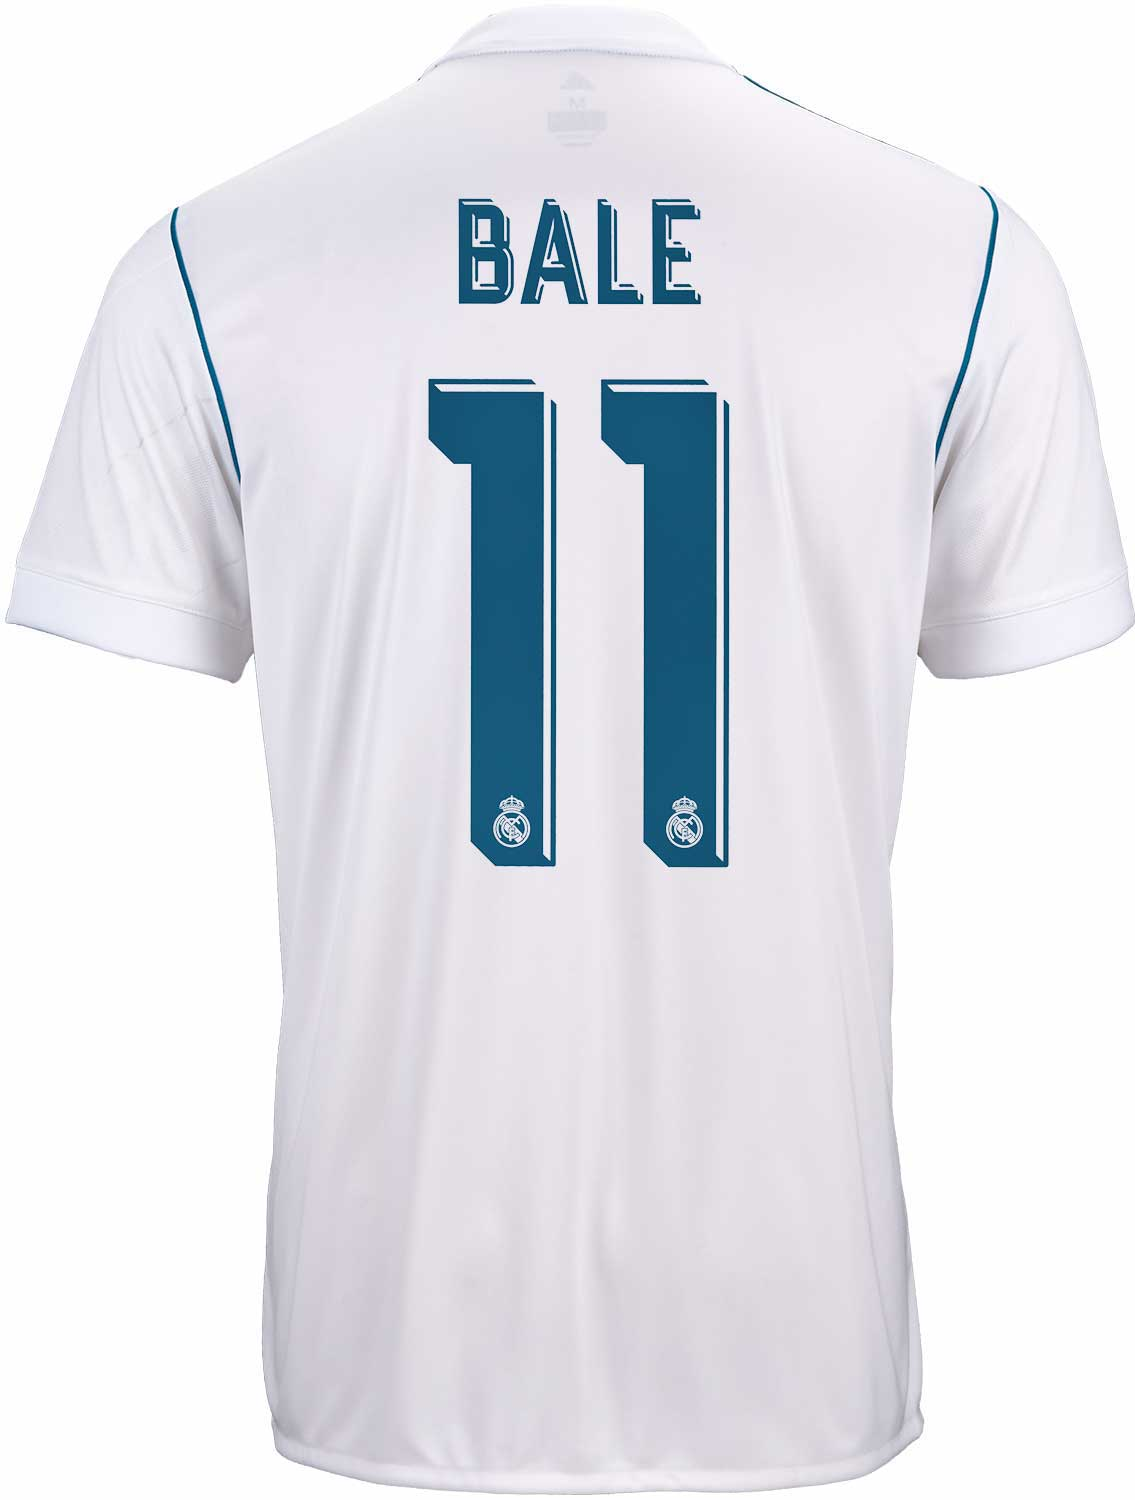 timeless design 2319a d1a9a 2017/18 adidas Kids Gareth Bale Real Madrid Home Jersey ...